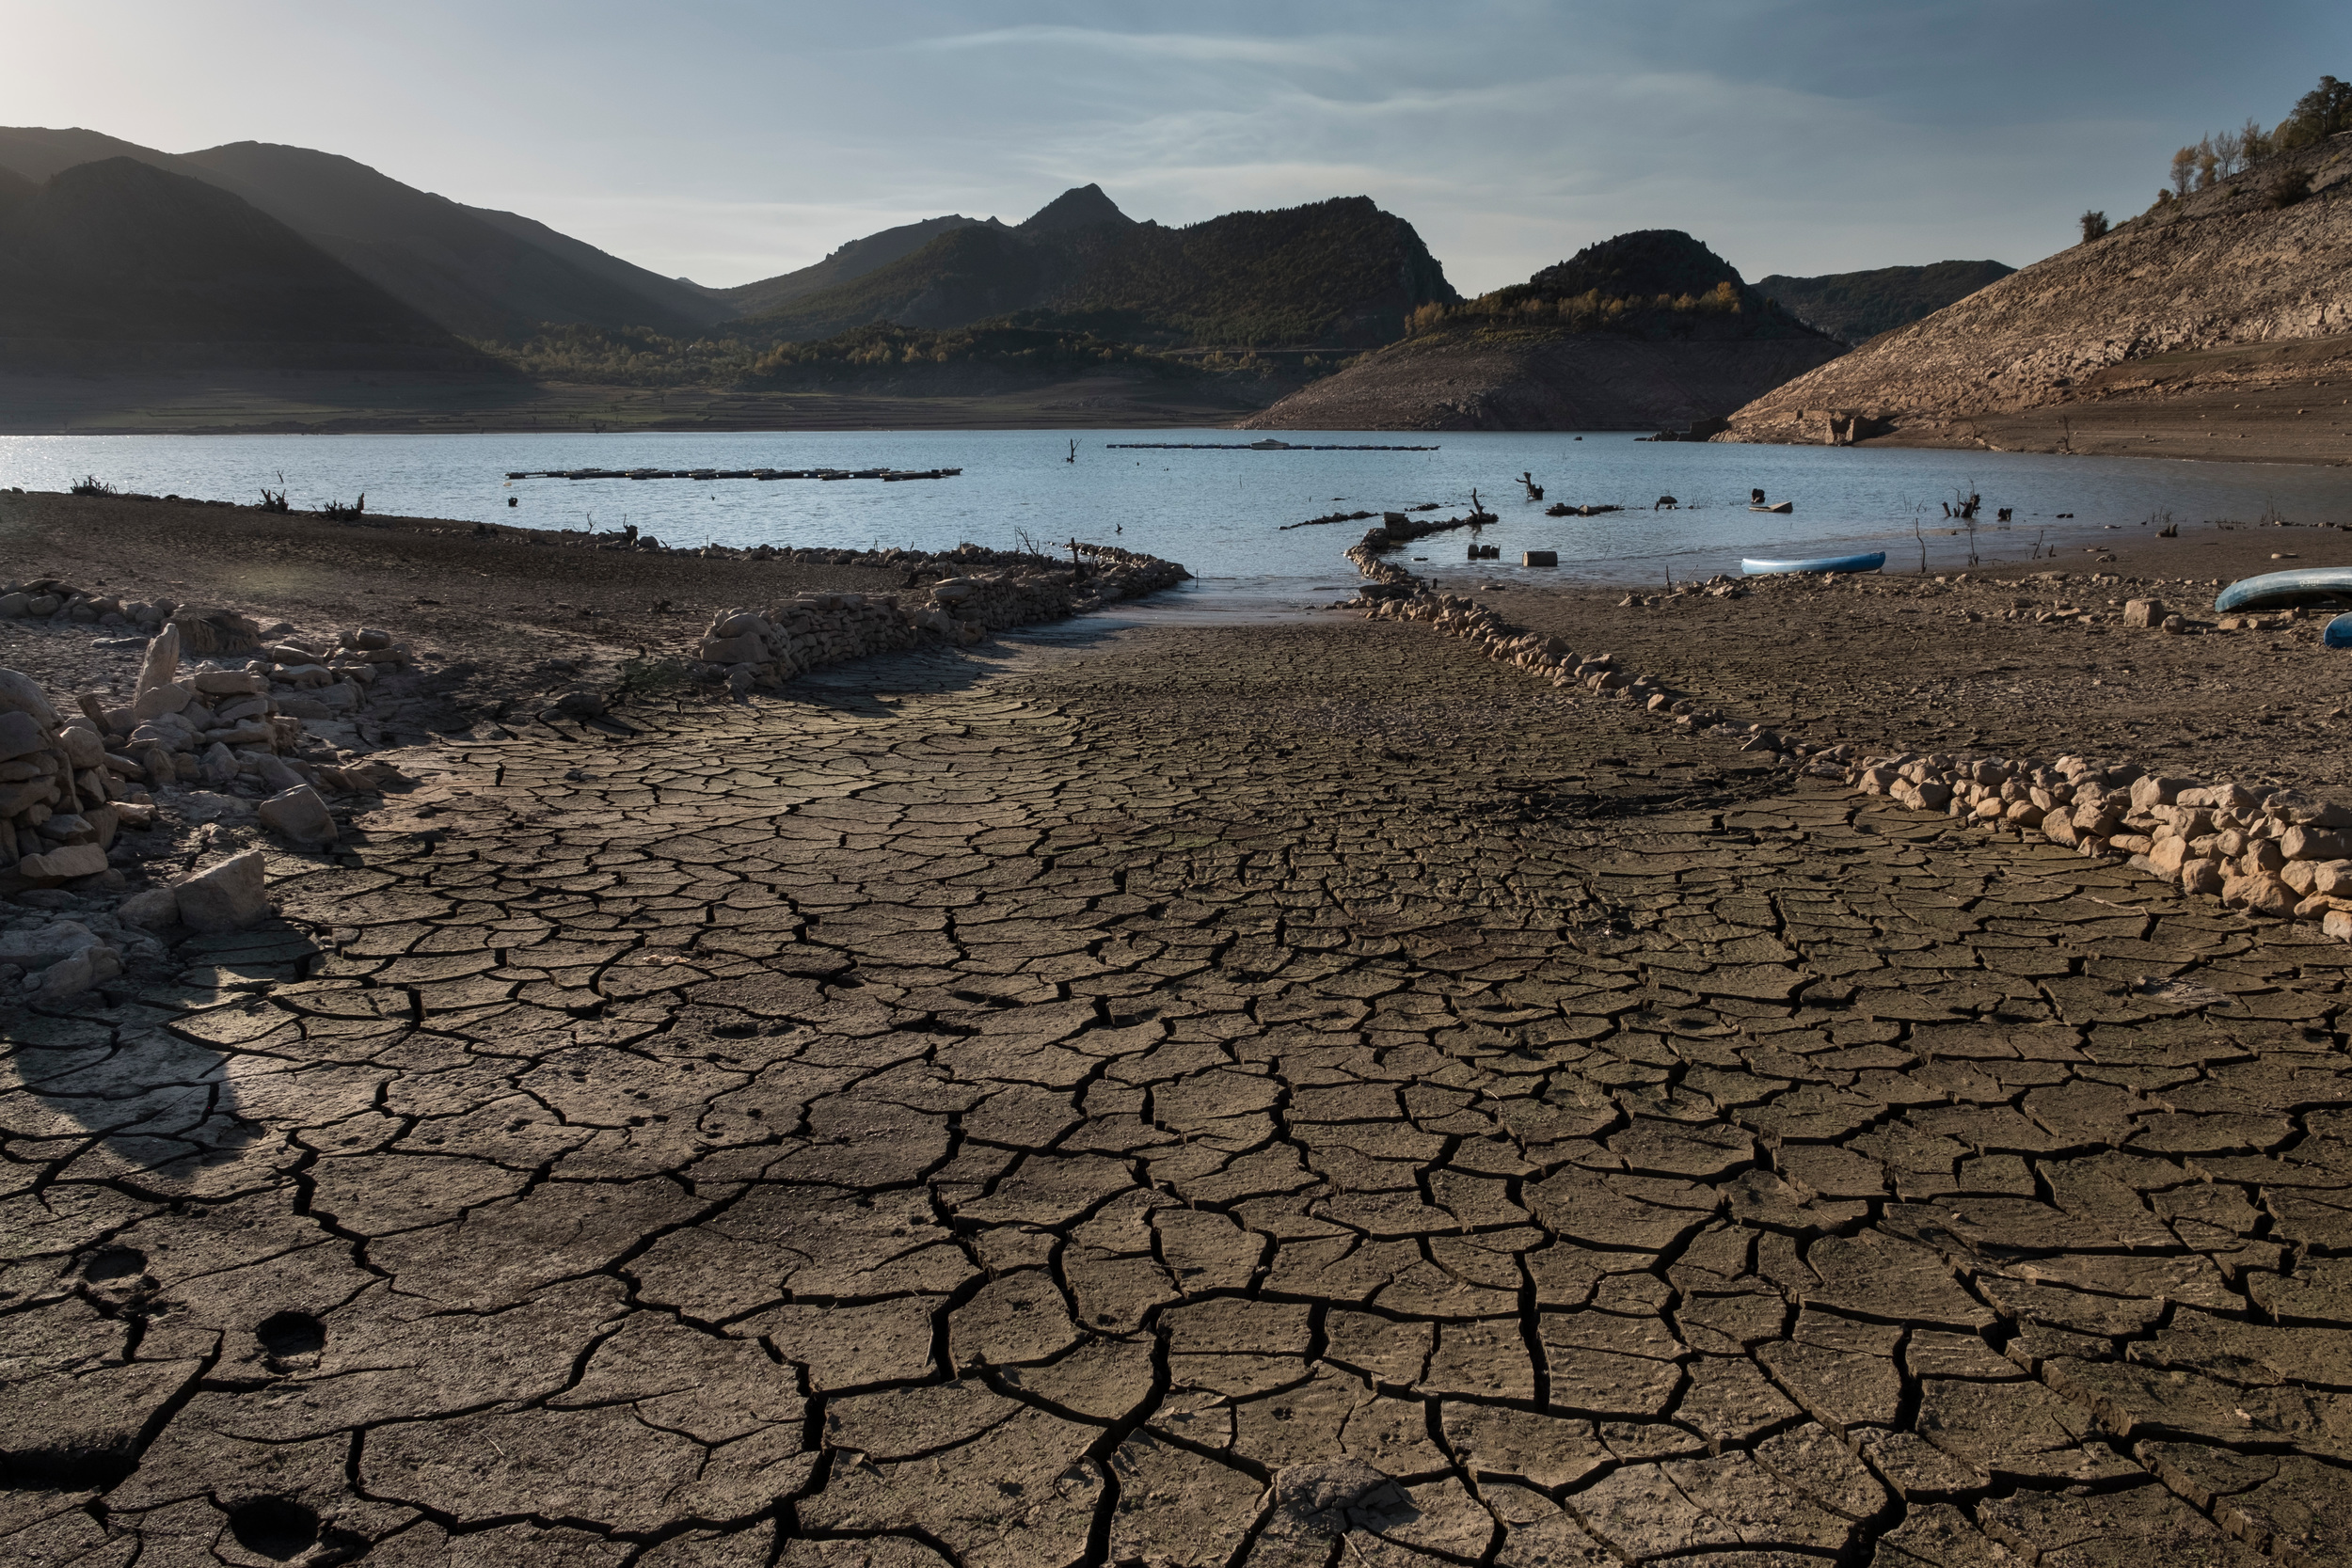 An extremely dried-out, brown landscape with cracked earth in the foreground, with a reservoir in the distance and mountains behind.